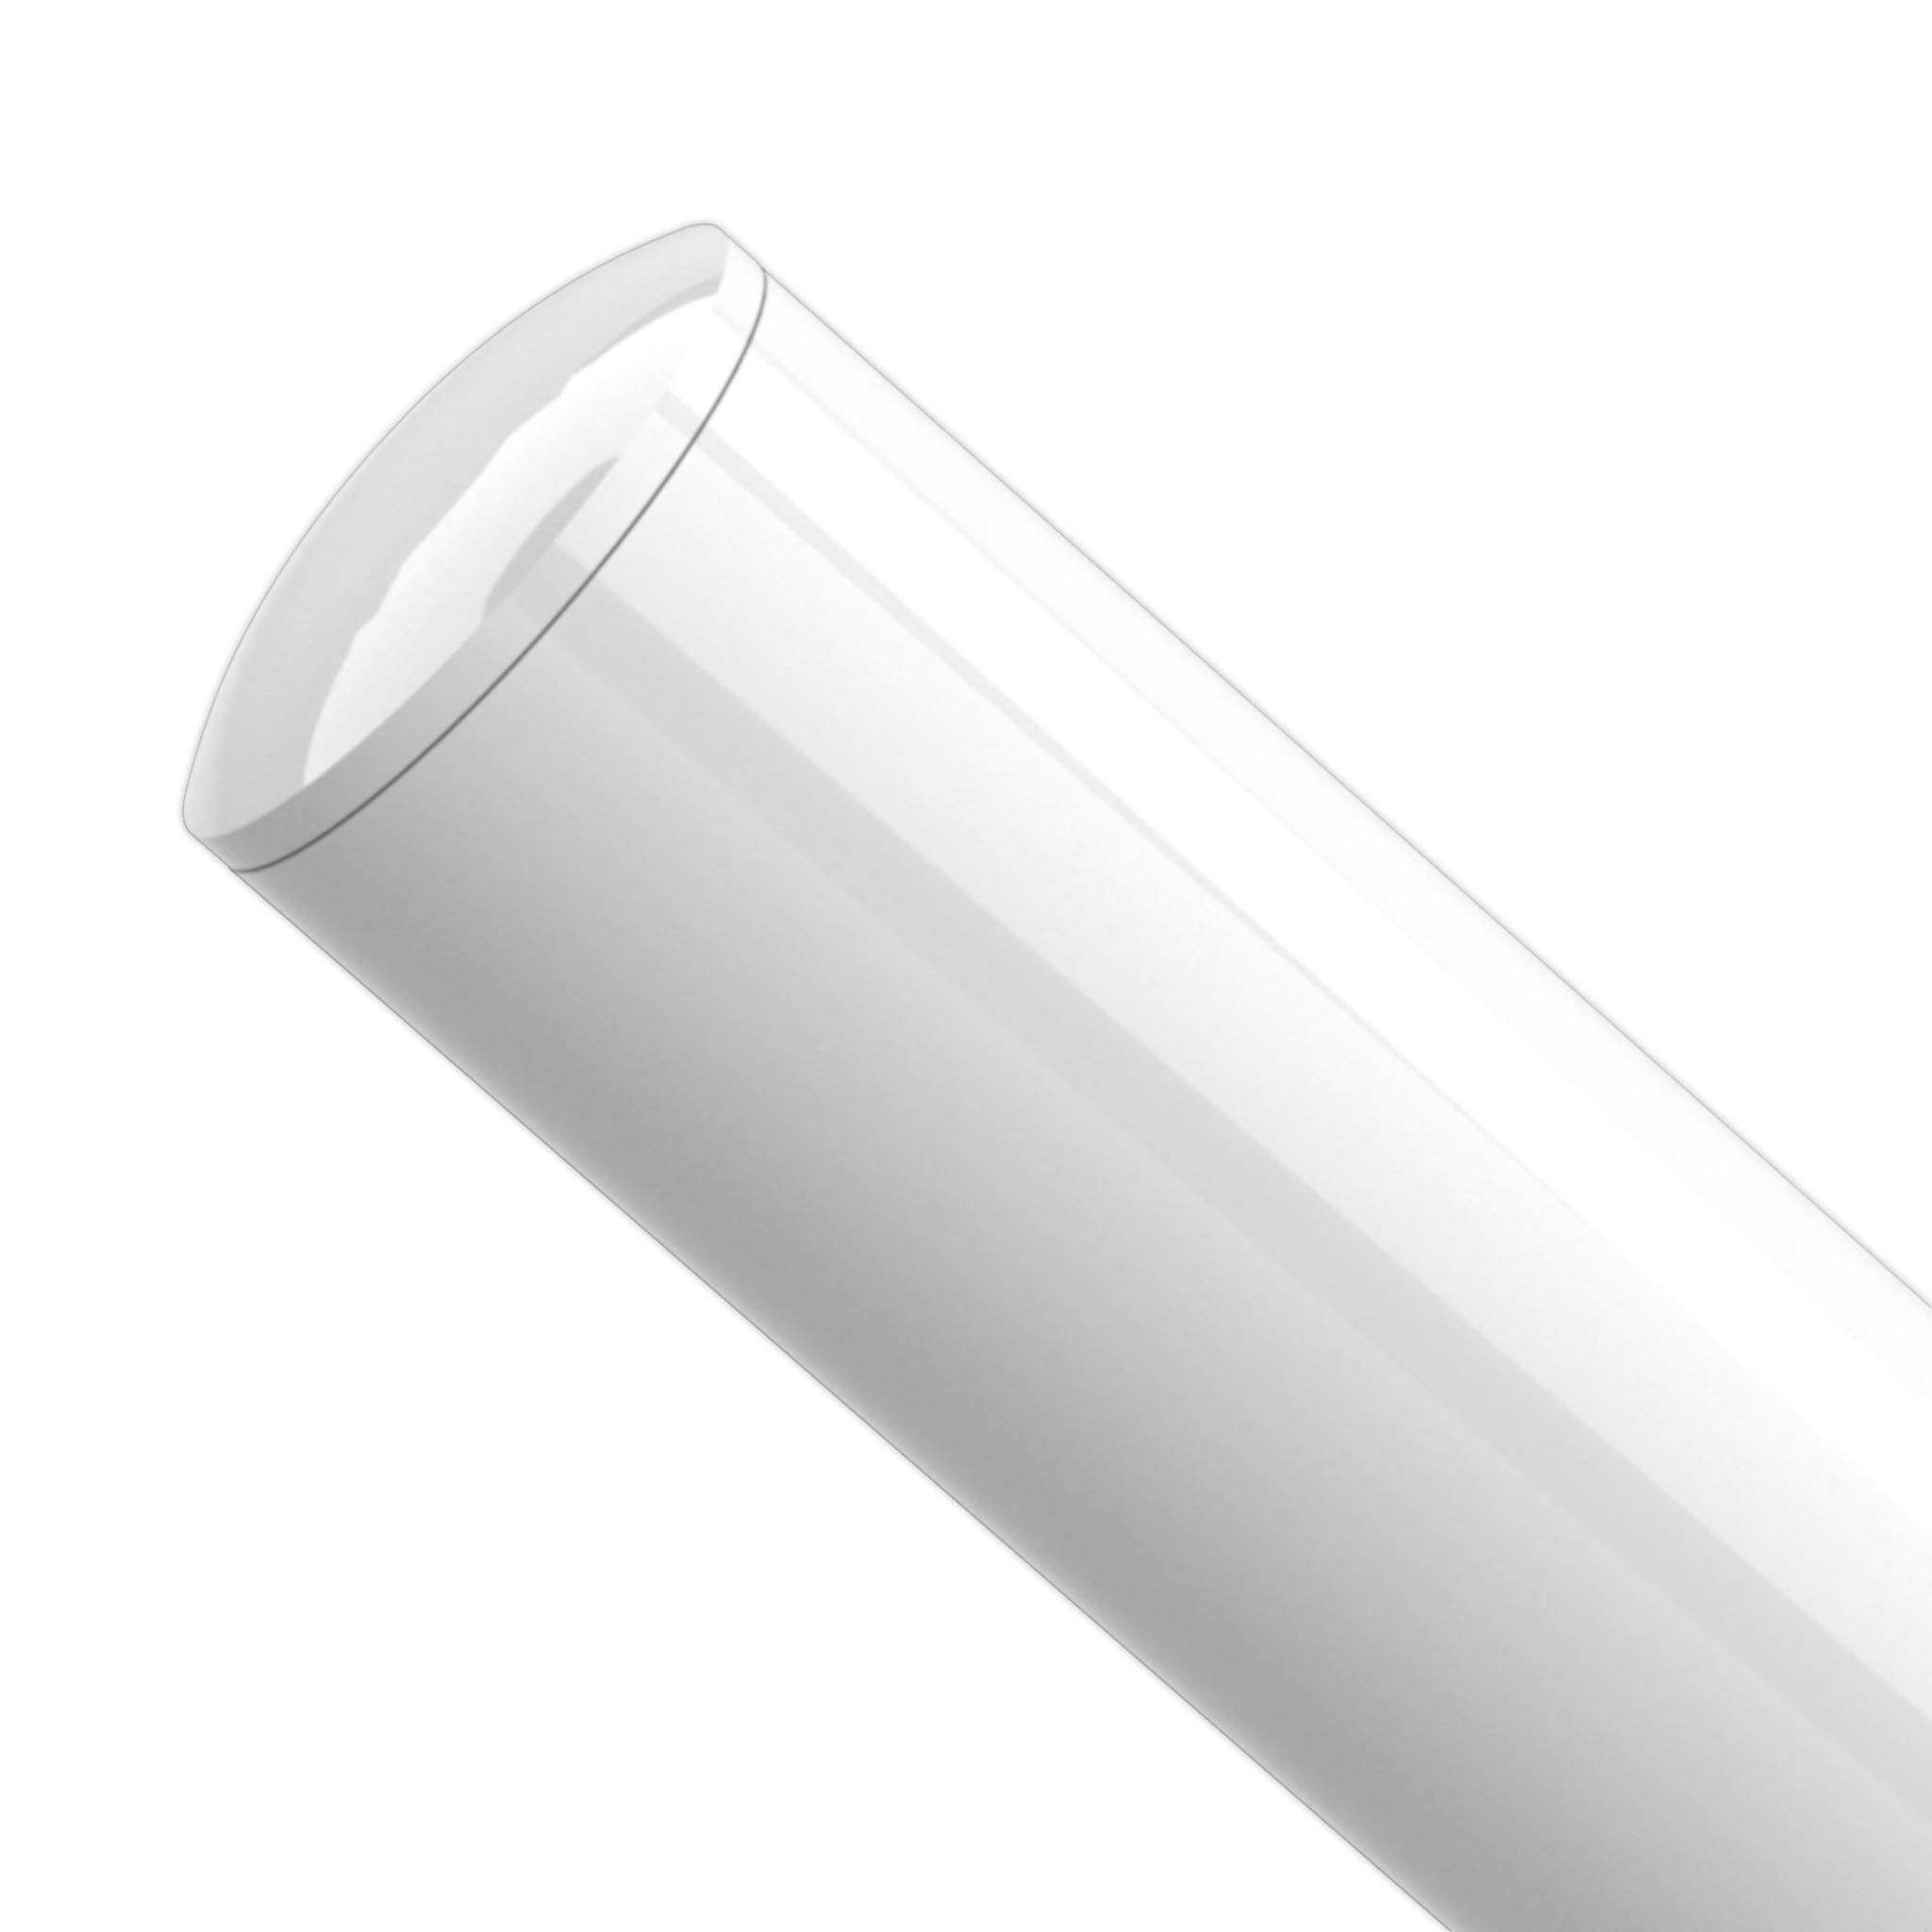 FORMUFIT F114IDC-WH-10 PVC Internal Domed End Cap, Furniture Grade, 1-1/4'' Size, White (Pack of 10) by FORMUFIT (Image #3)